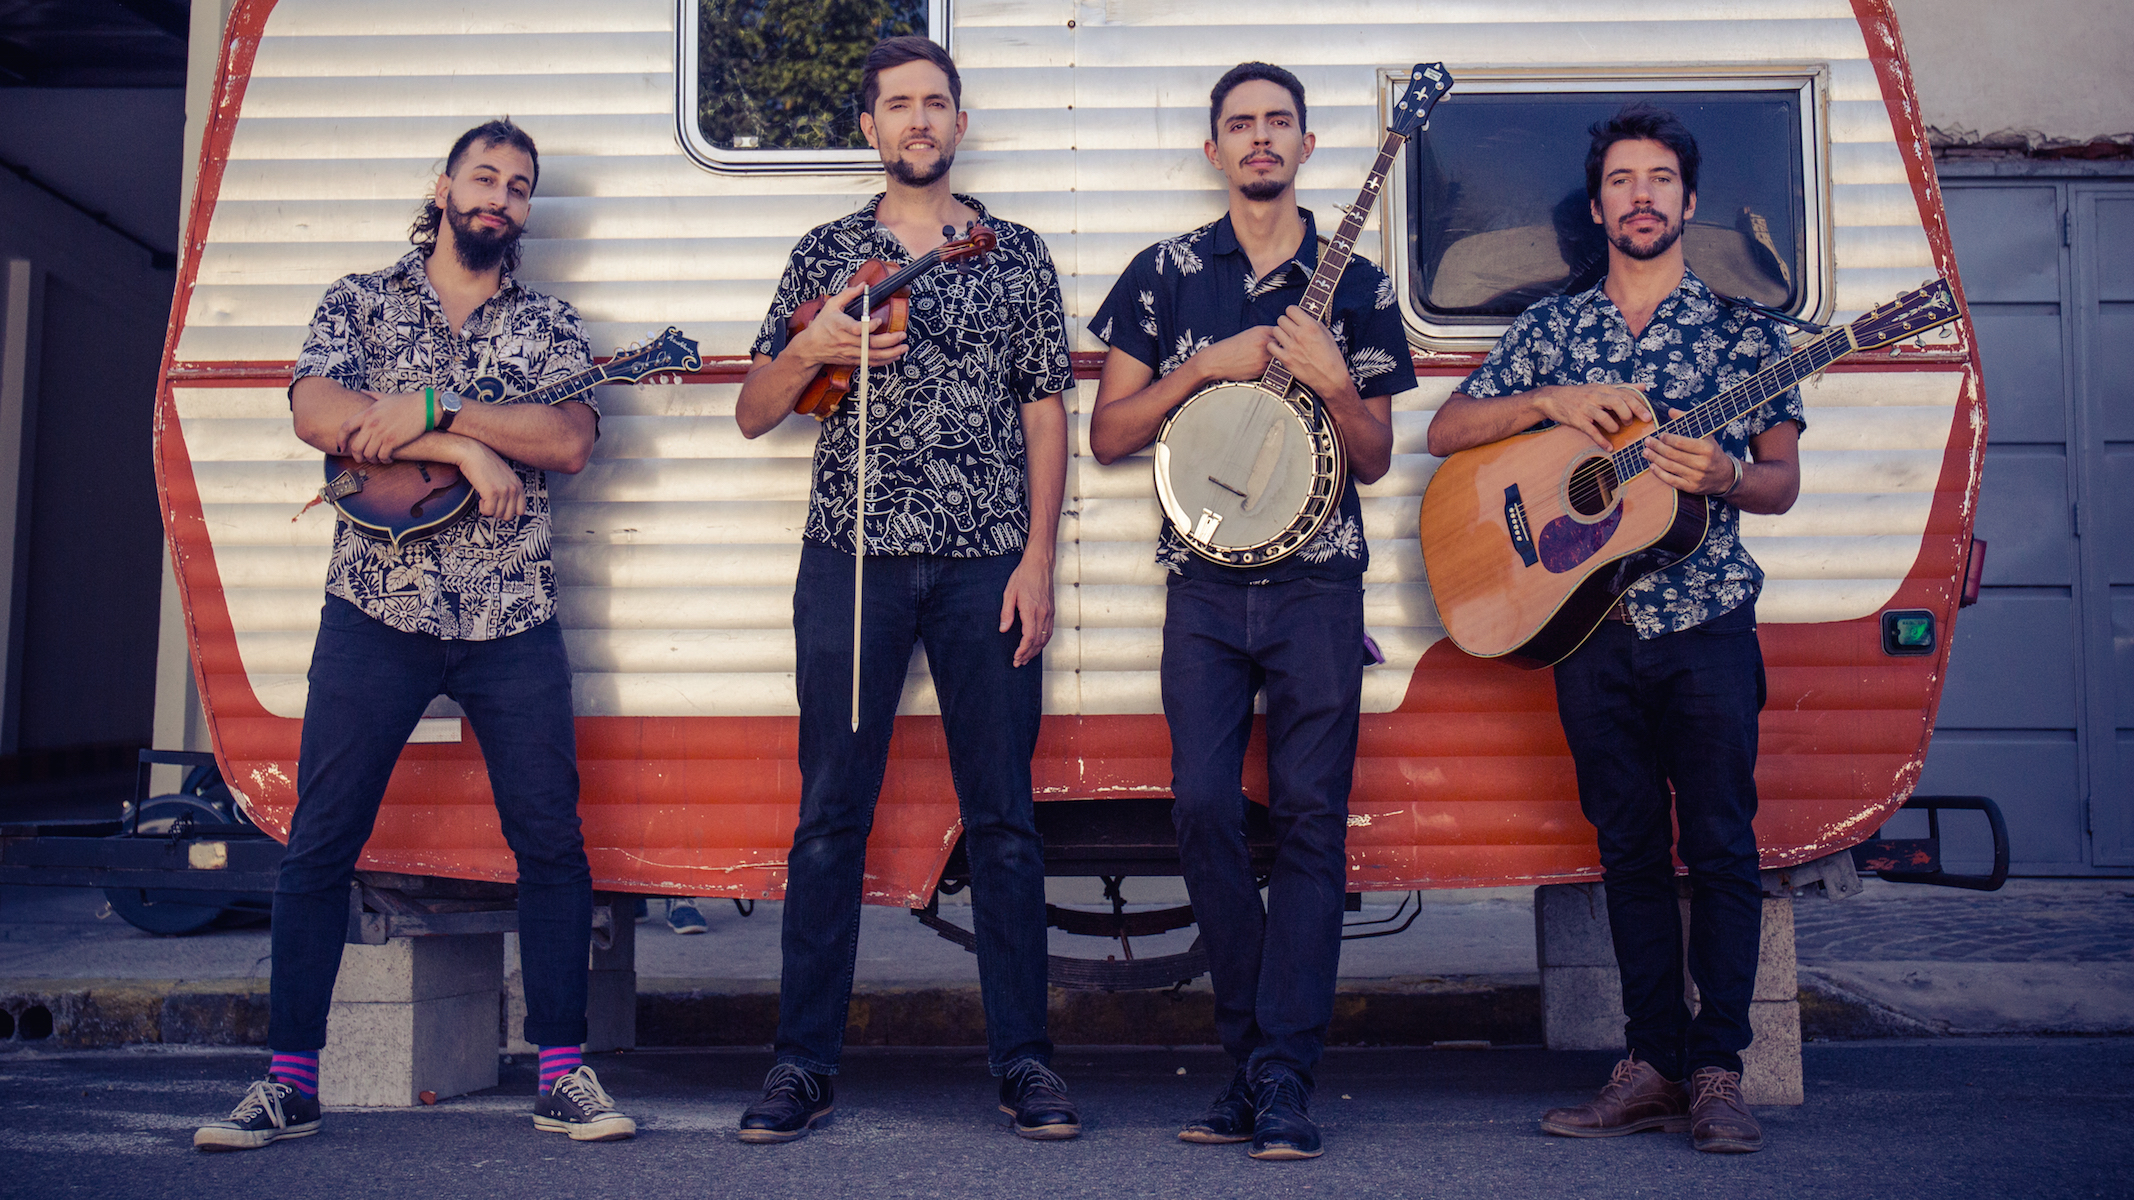 This Band Blends Bluegrass and Latin Roots Music to Poeticize Protest